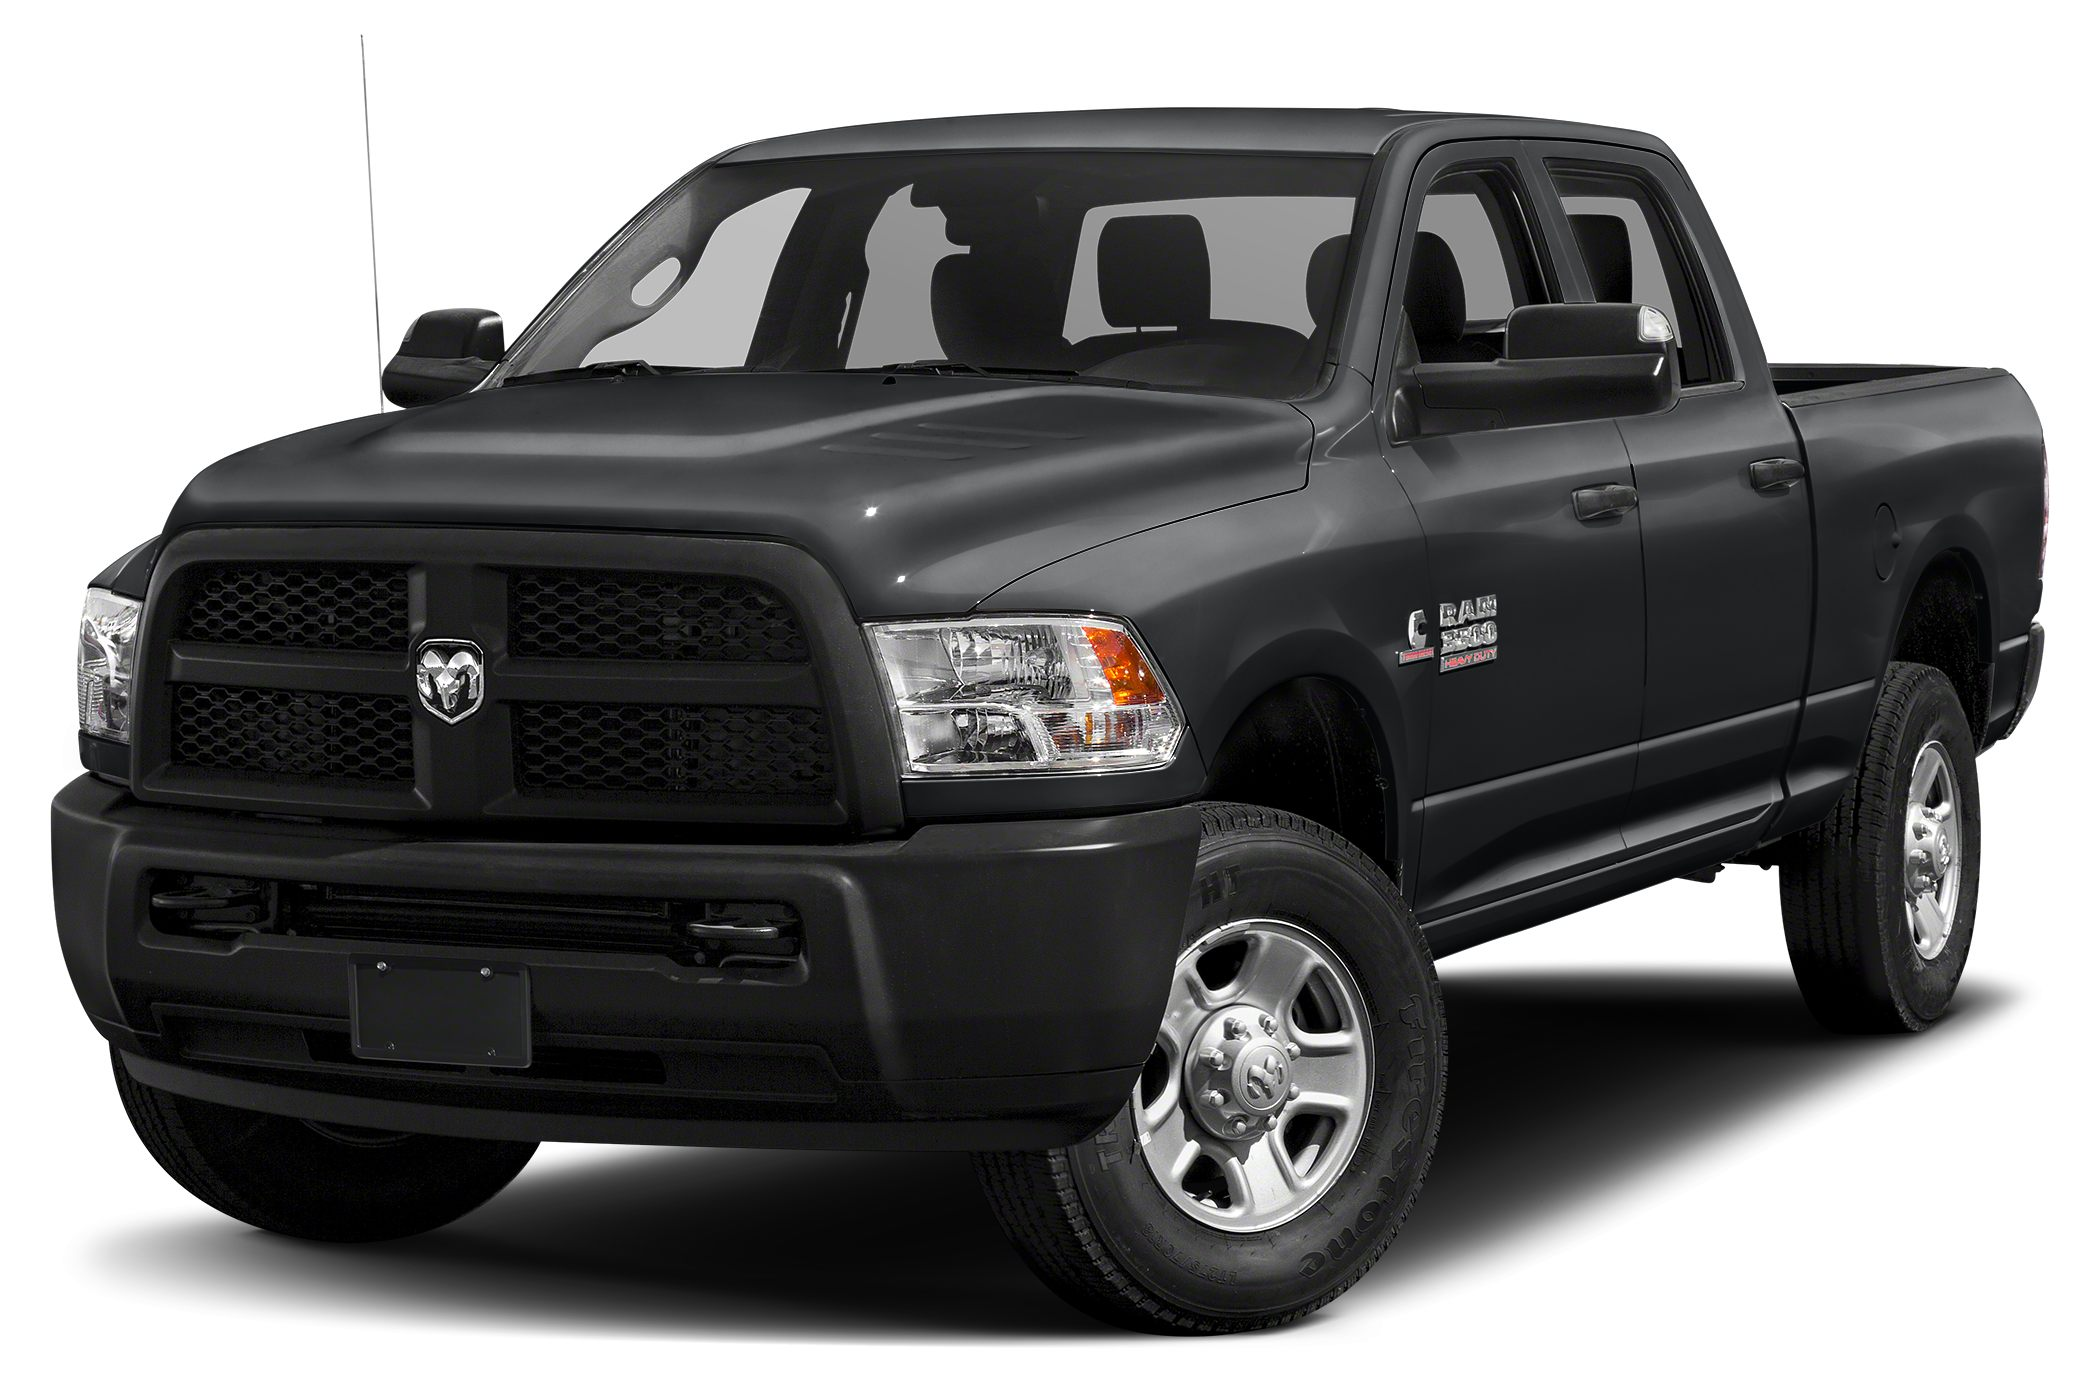 2018 RAM 3500 Tradesman Youve been longing for that one-time deal and I think Ive hit the nail